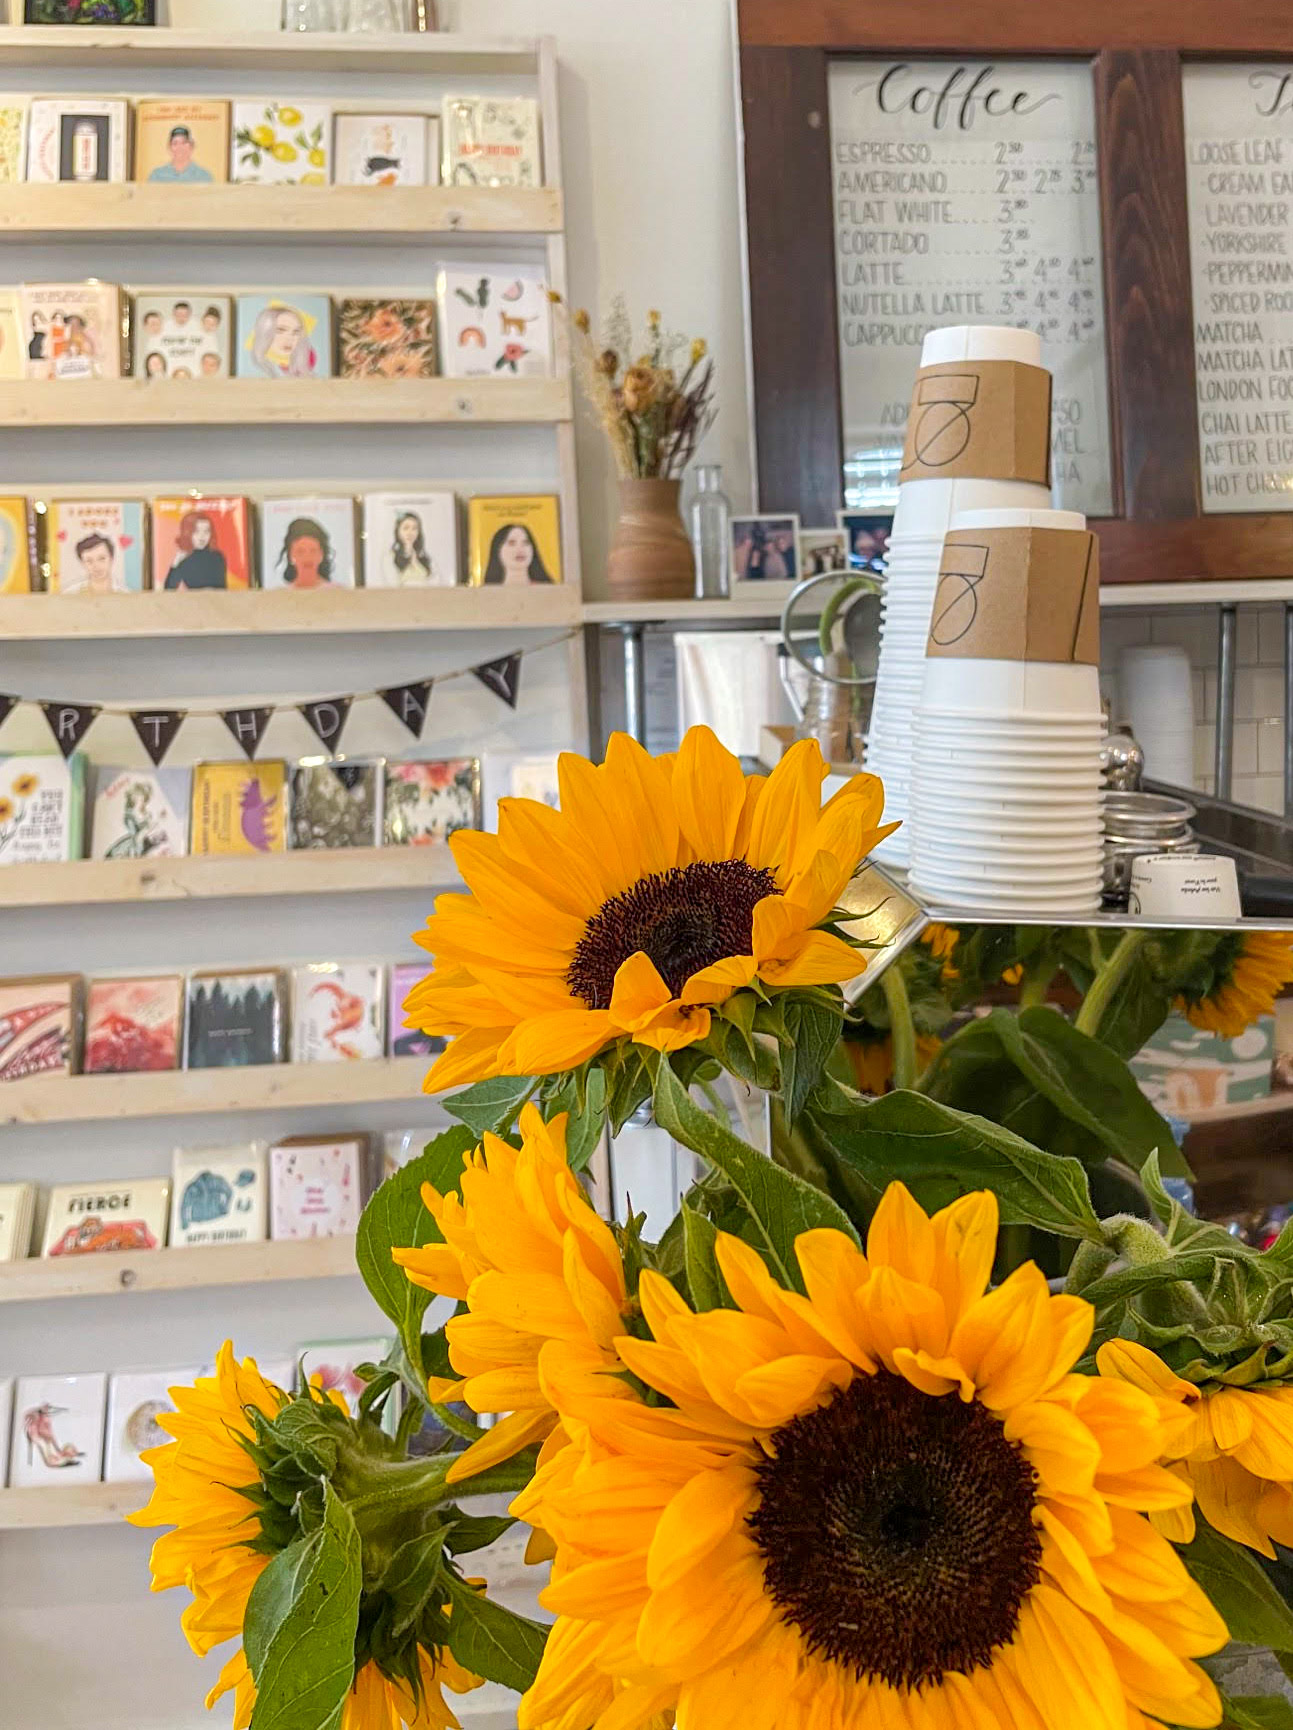 Sunflowers and greeting cards at Studio 205